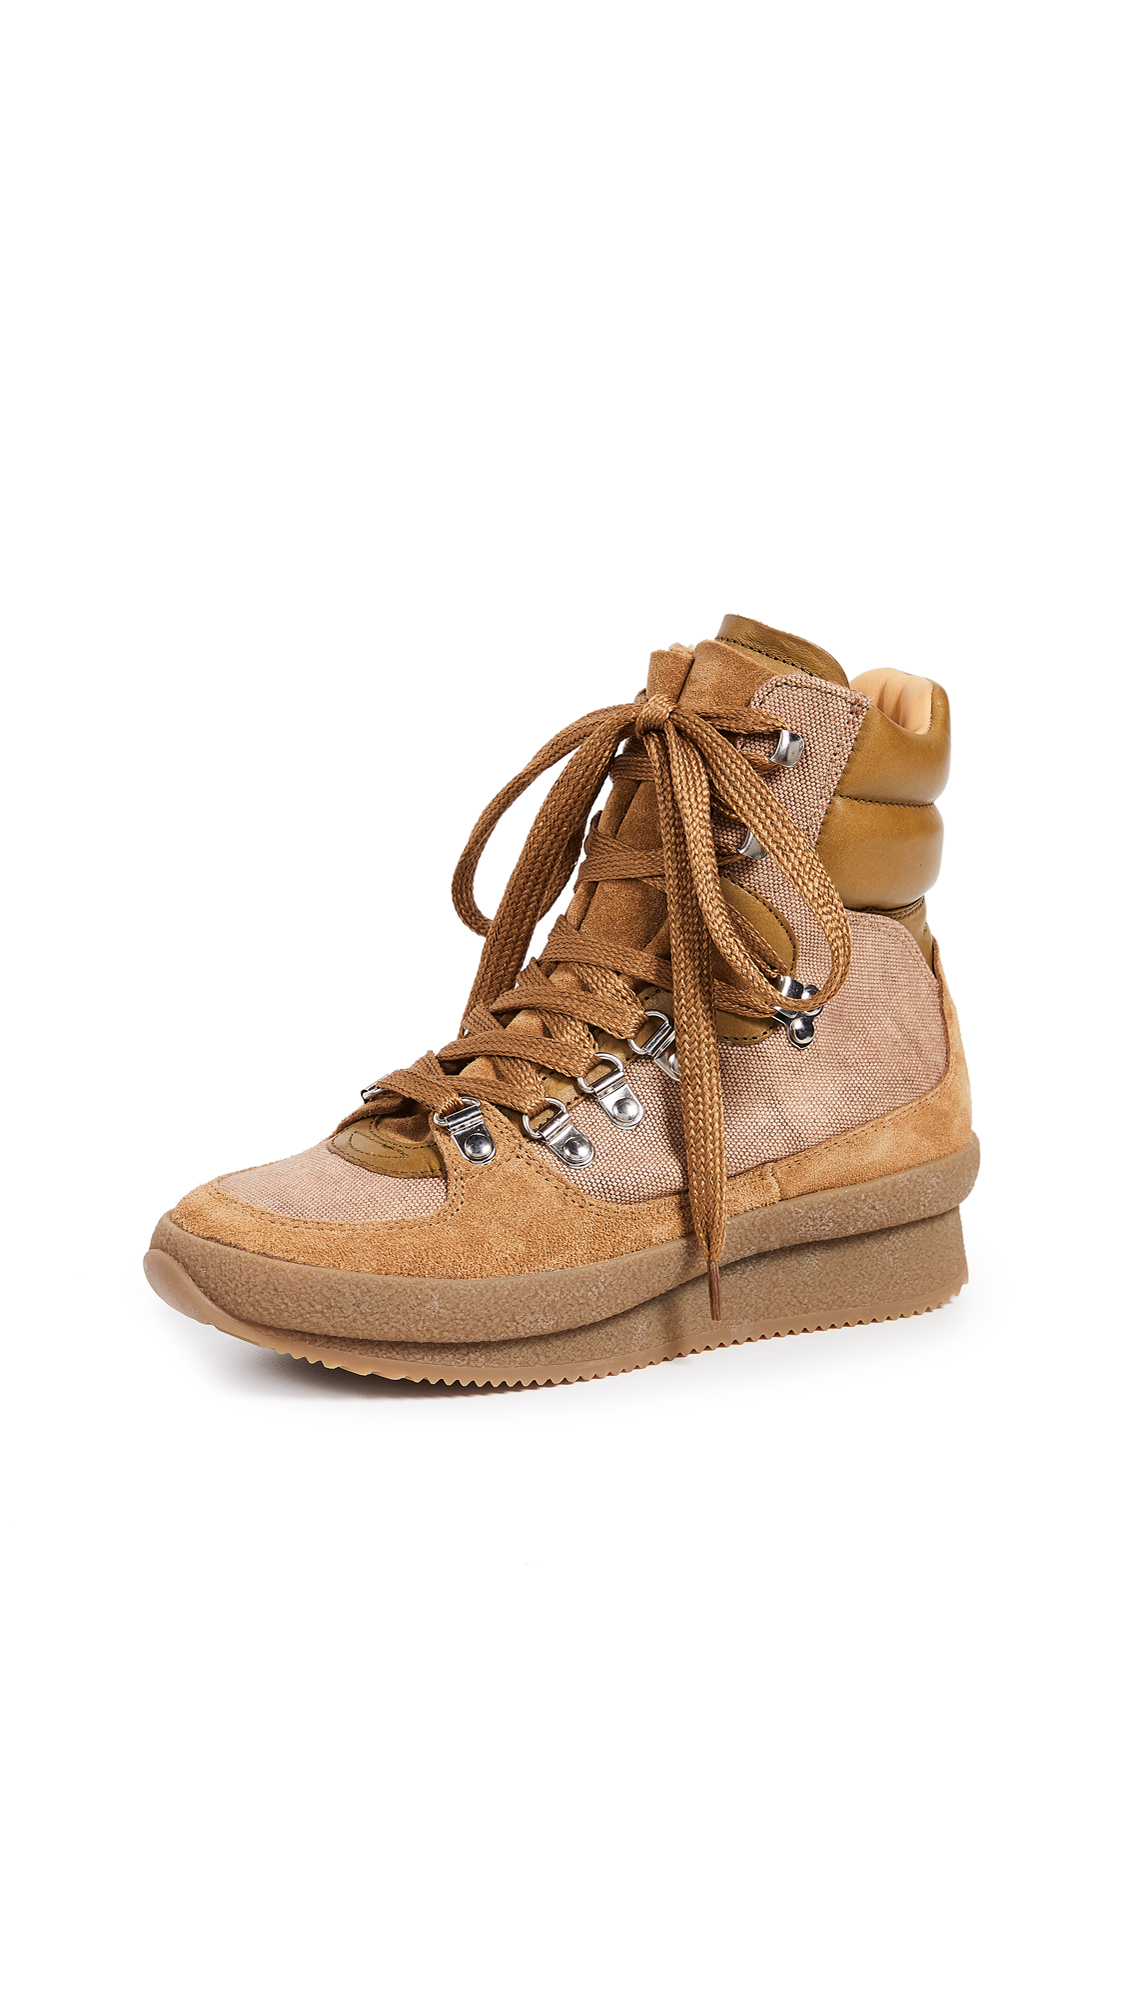 Isabel Marant Brendty Suede Hiking Boots - Khaki